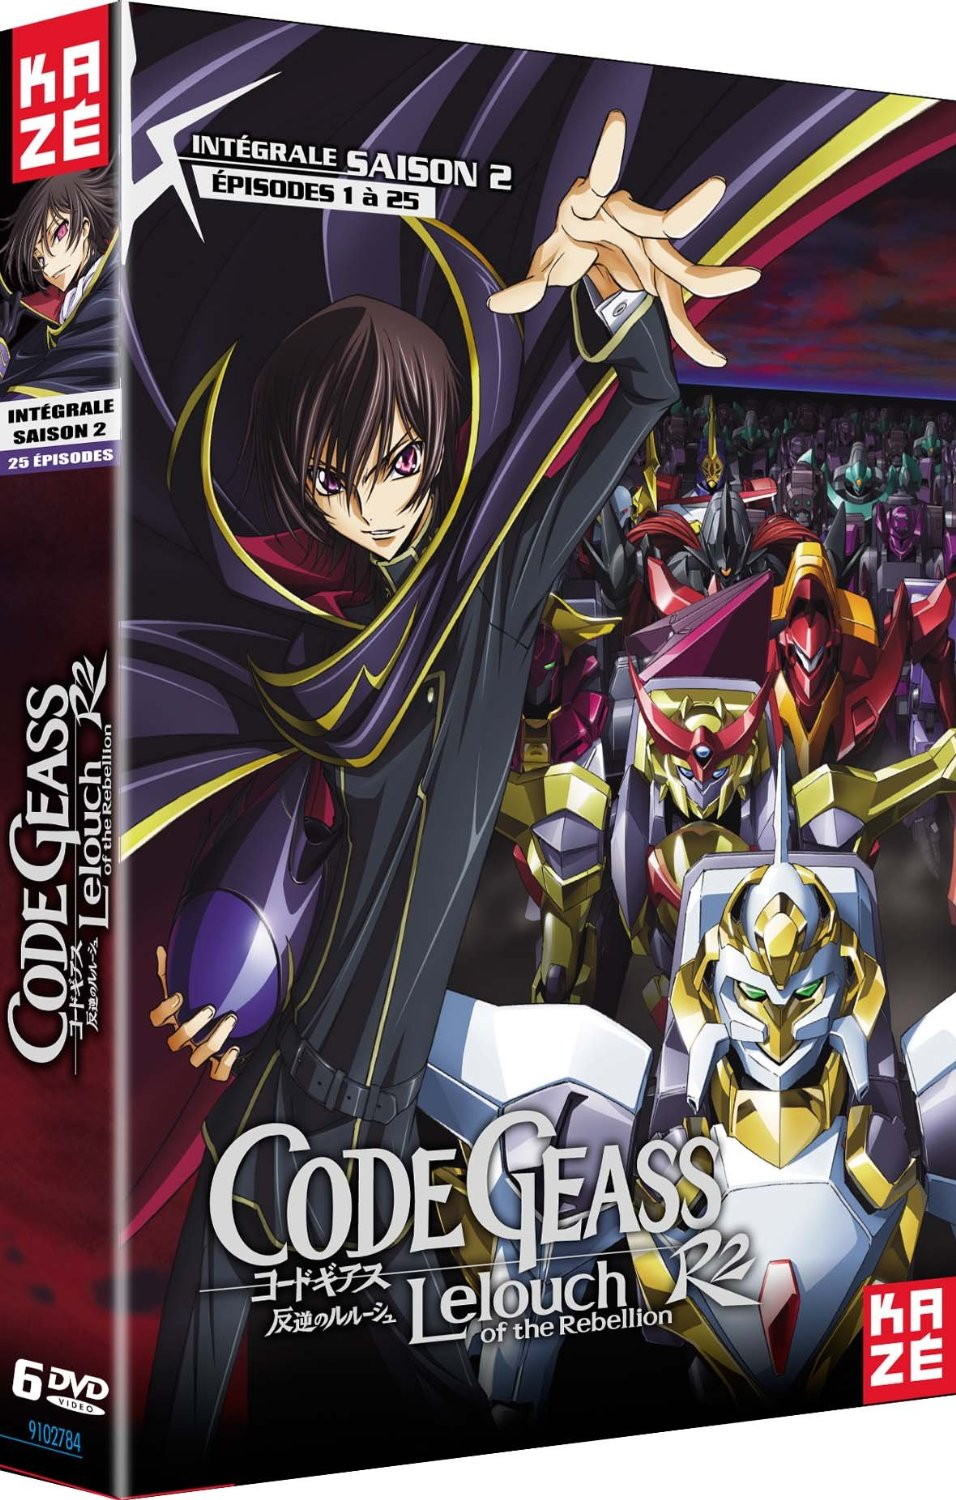 Code Geass - Lelouch of the Rebellion R2 2